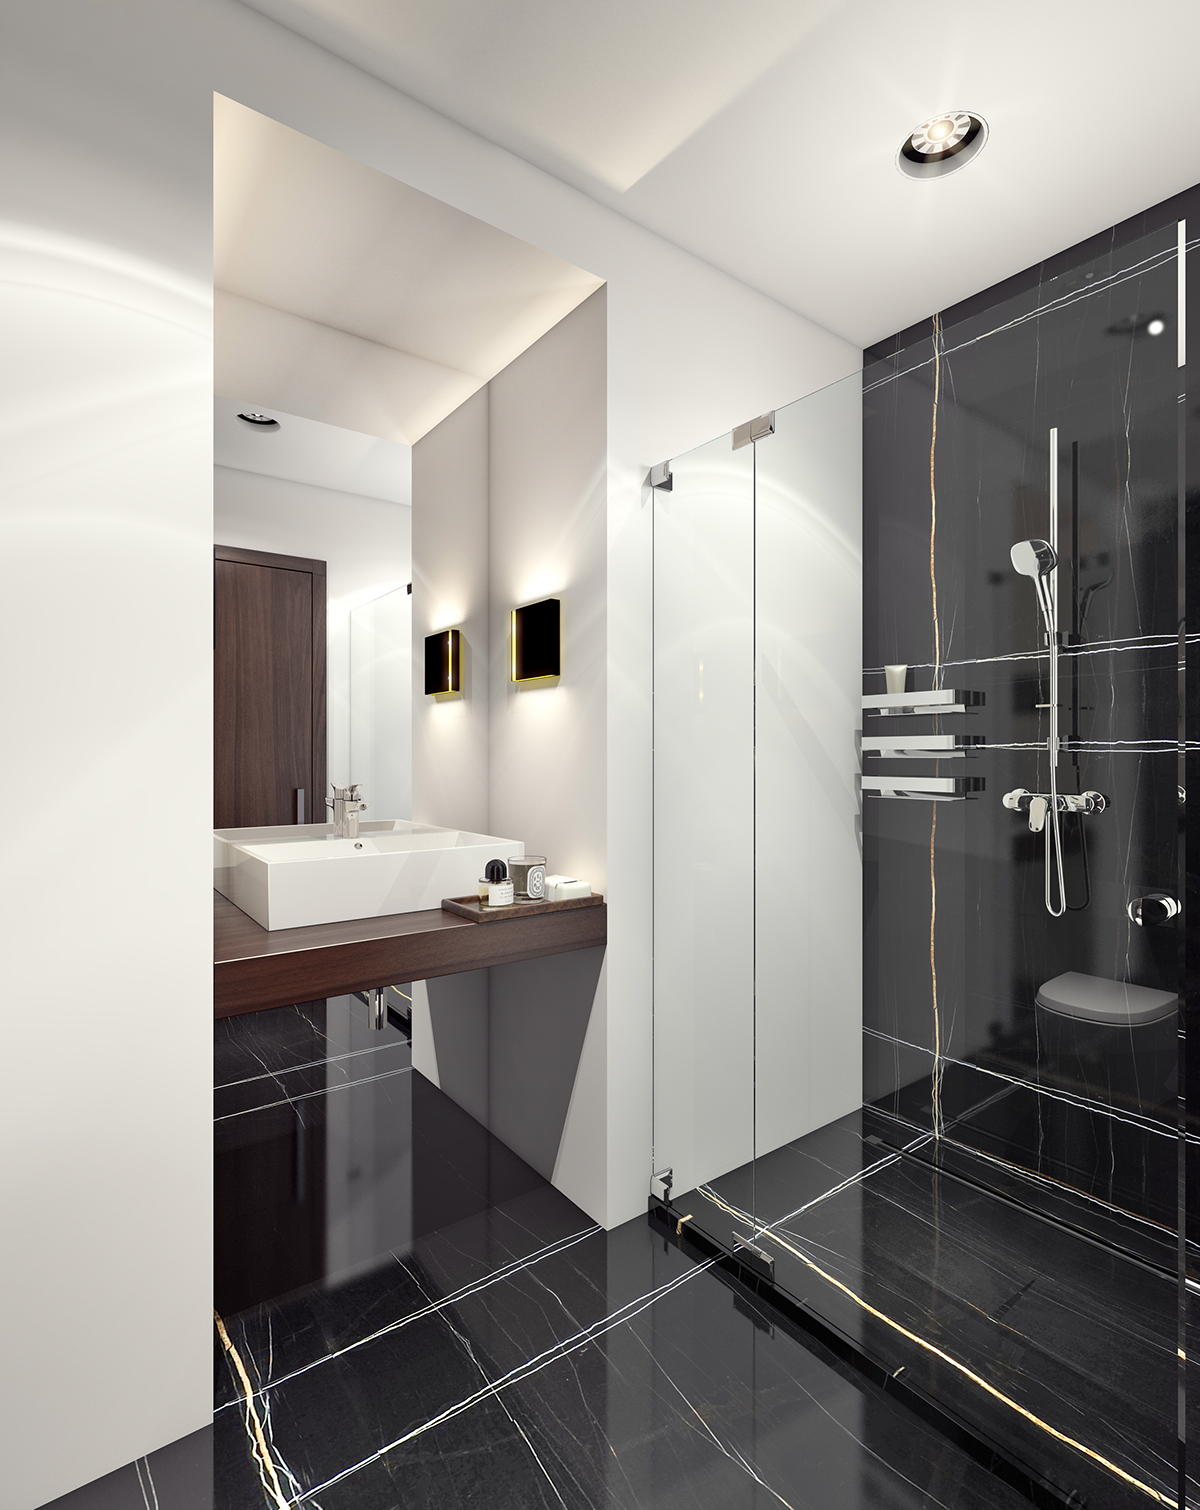 & Small WC design. 3D visualization. on Behance